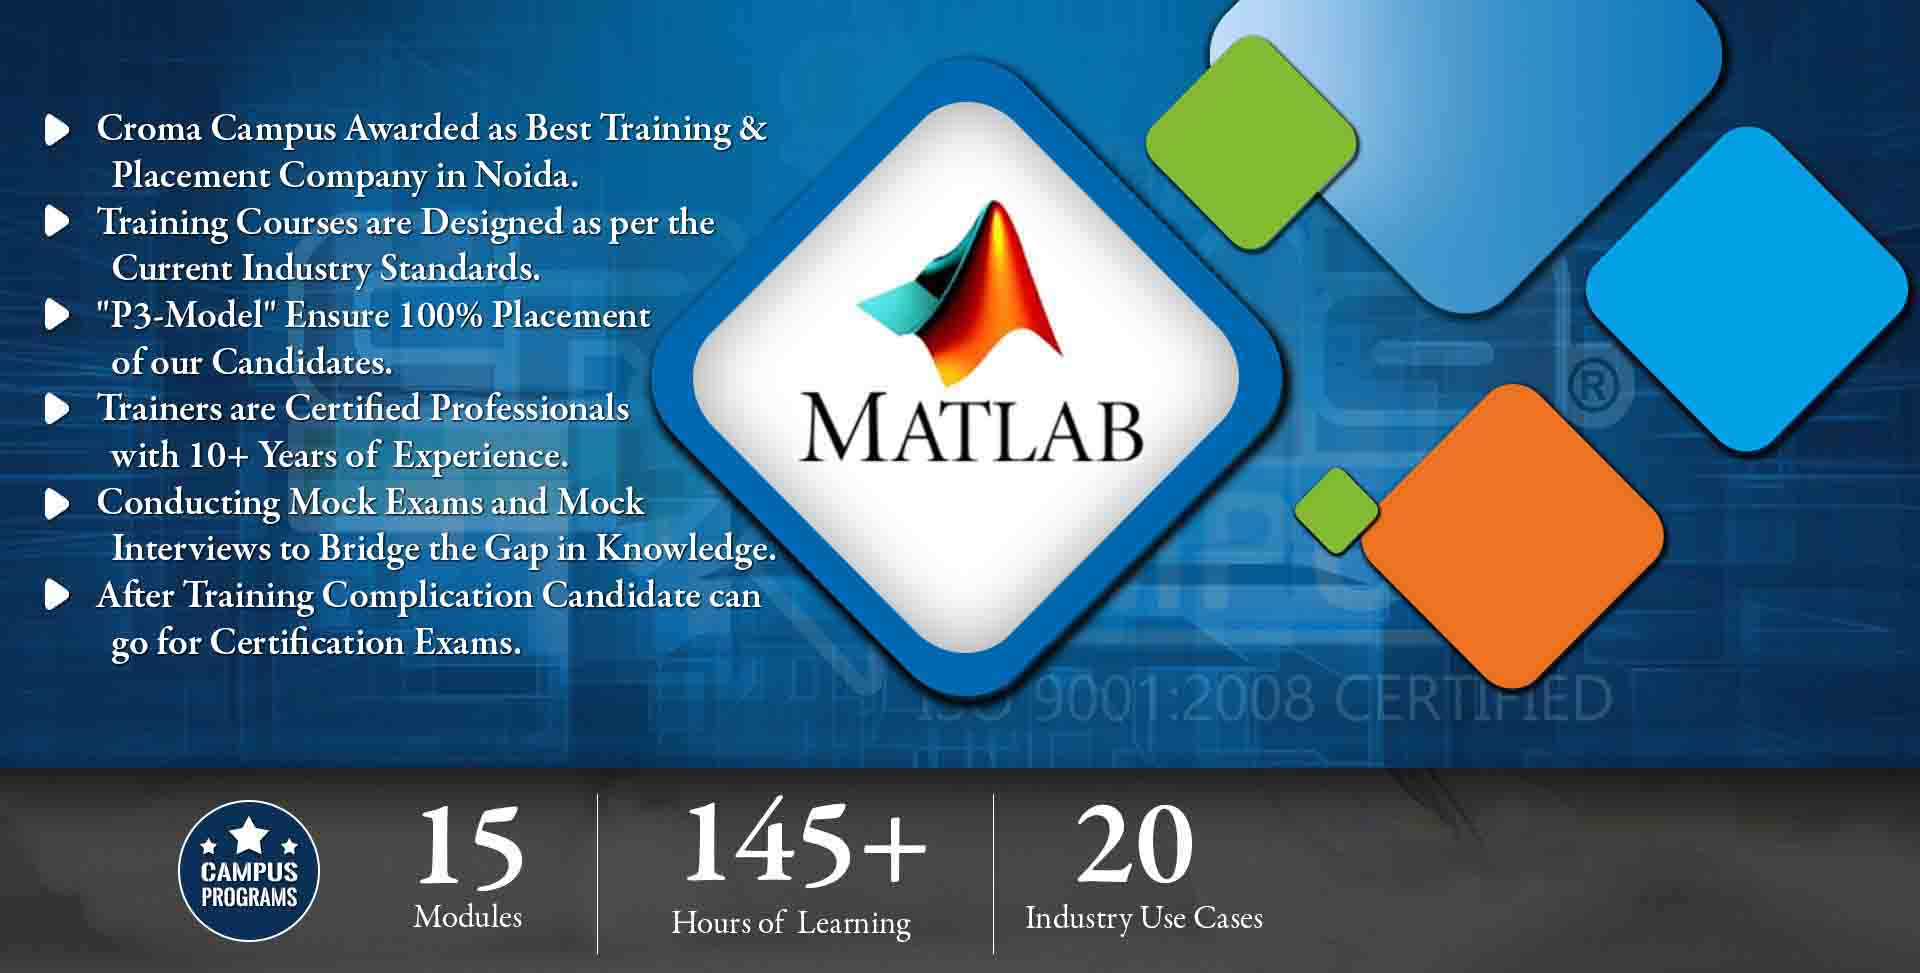 Matlab Training in Noida- Croma Campus